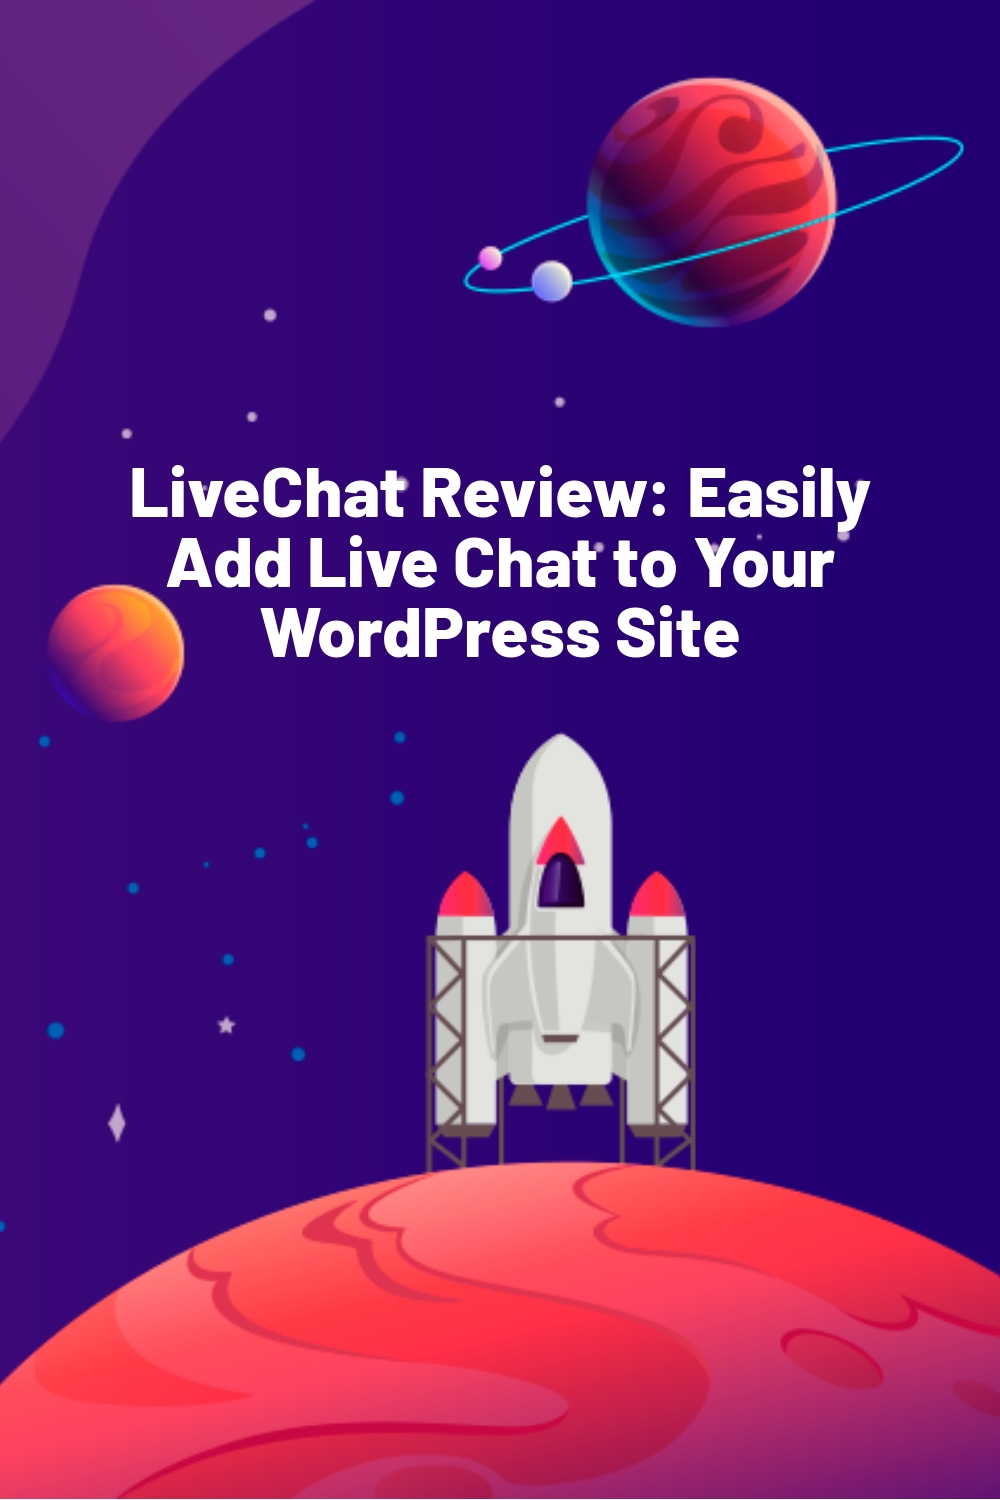 LiveChat Review: Easily Add Live Chat to Your WordPress Site